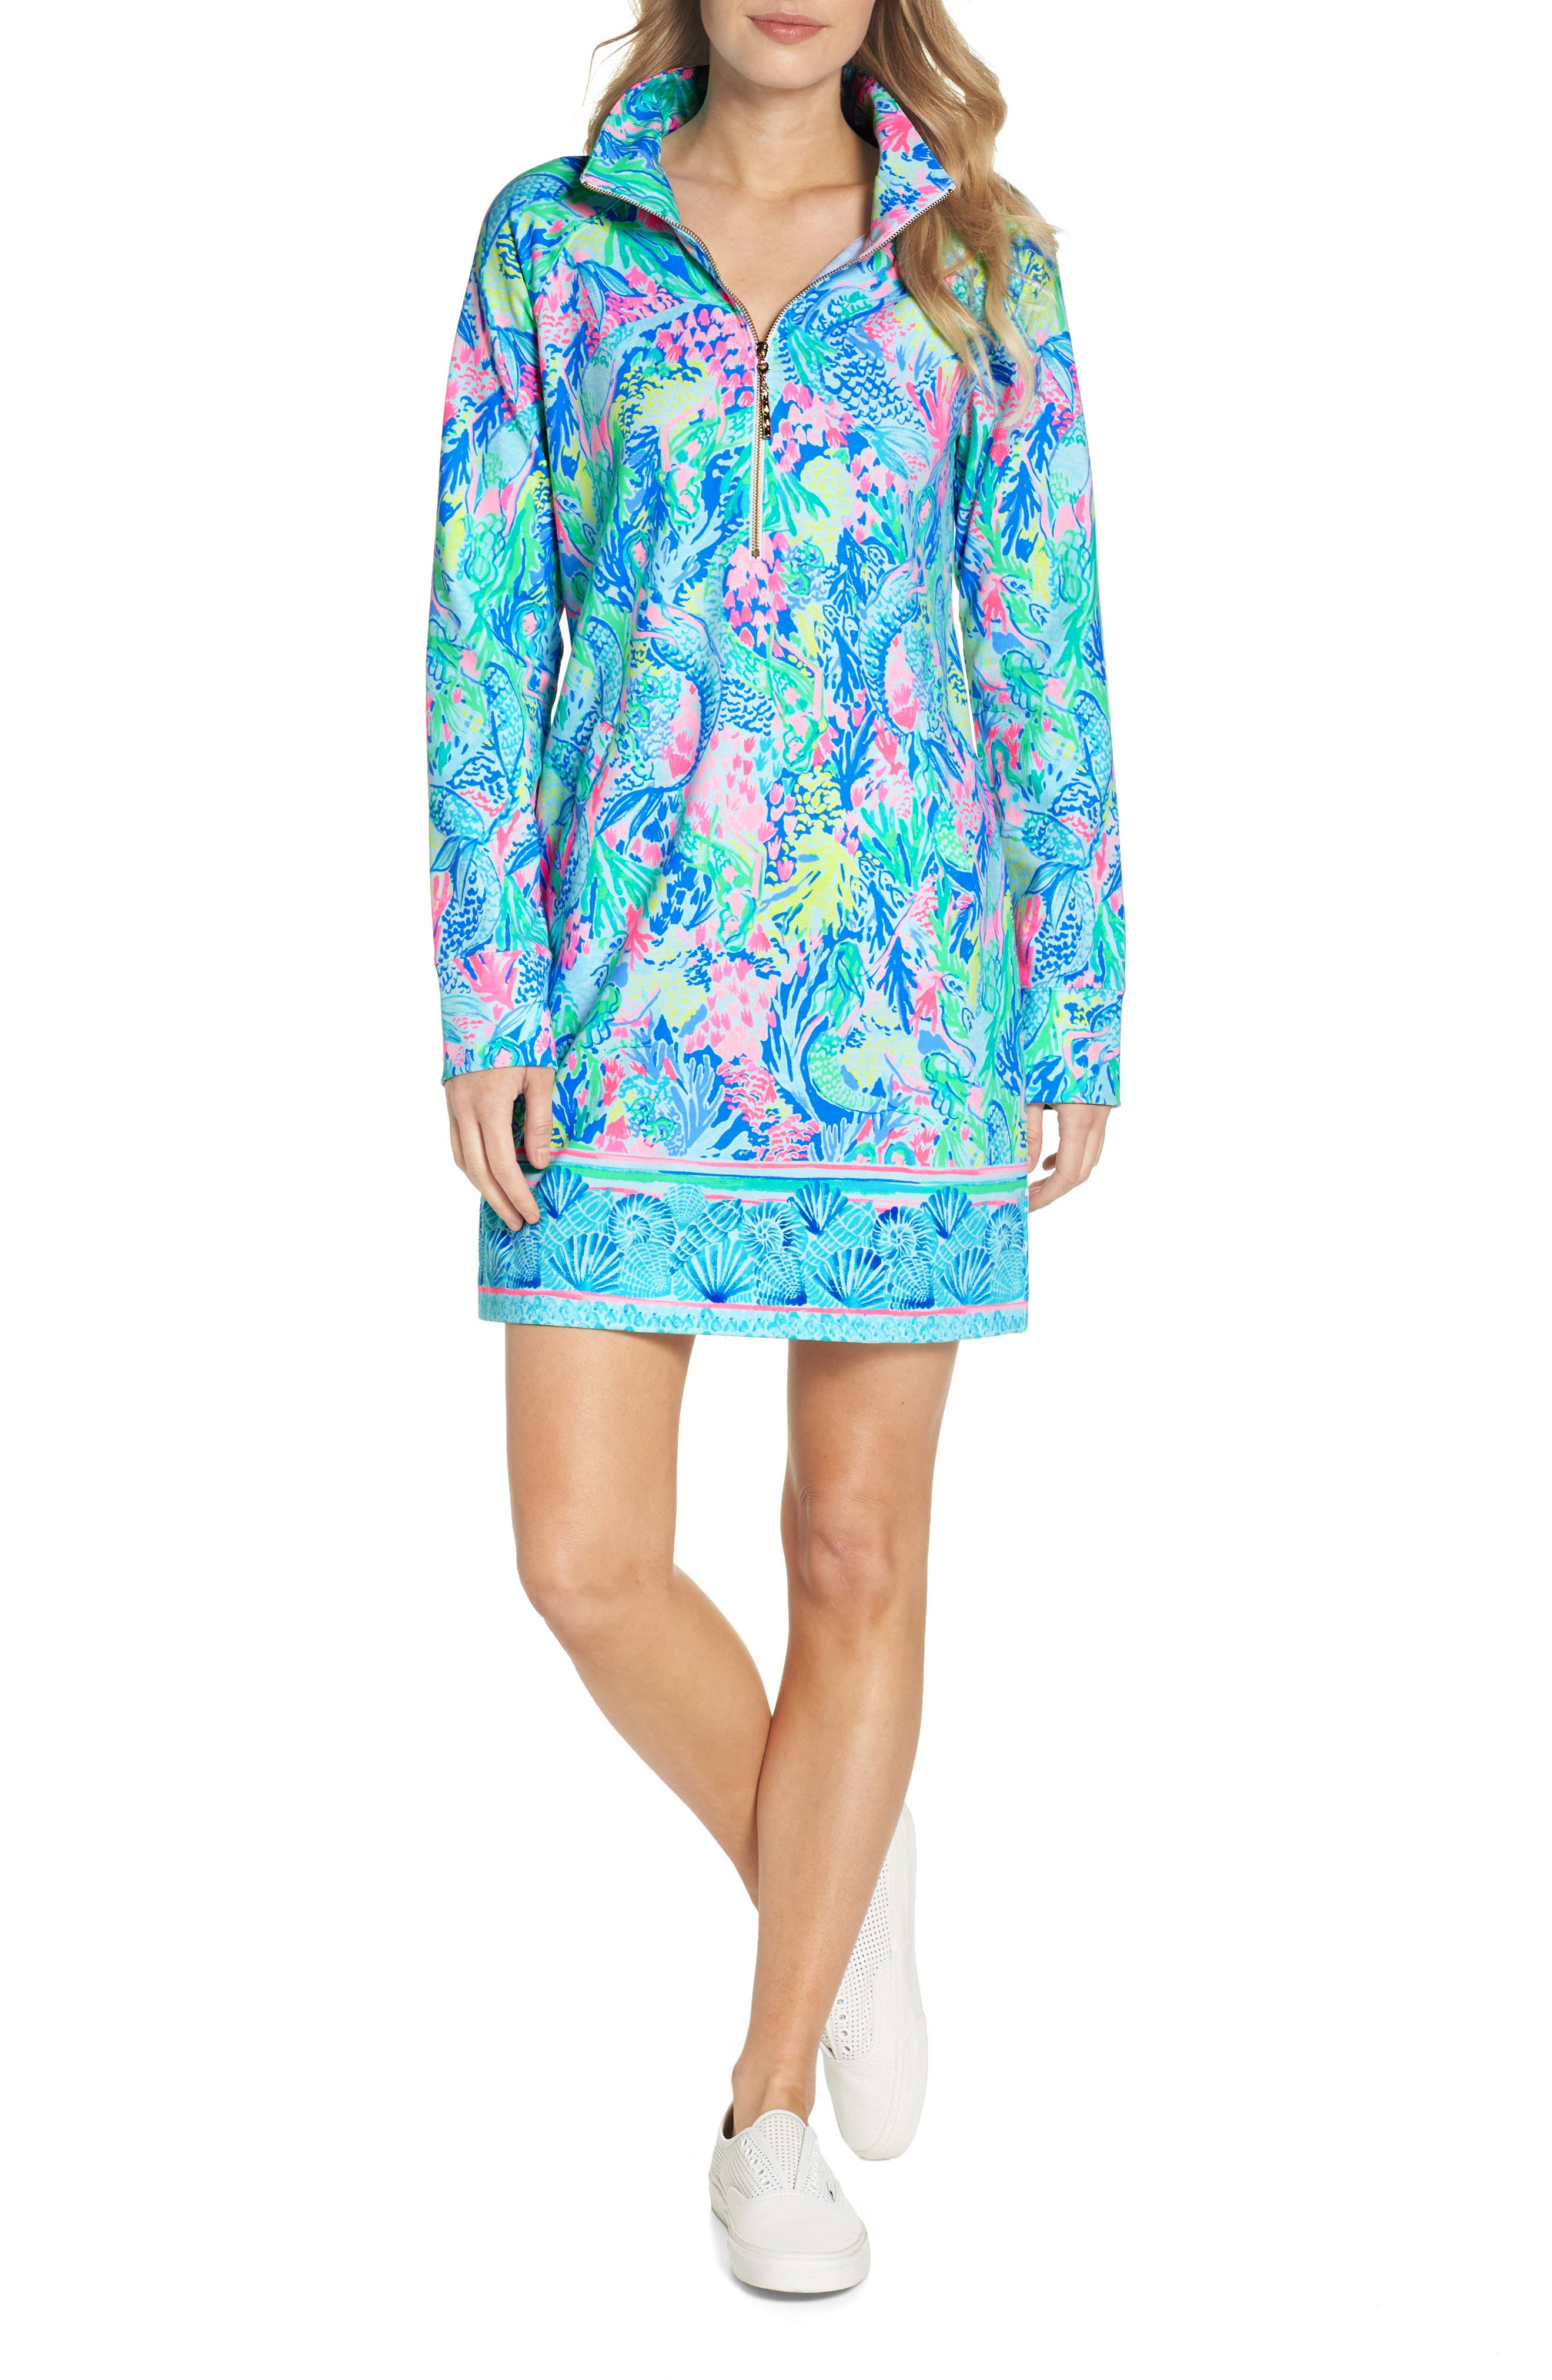 LILLY PULITZER<SUP>®</SUP> Lilly Pulitzer Skipper Shift Dress, Main, color, 449